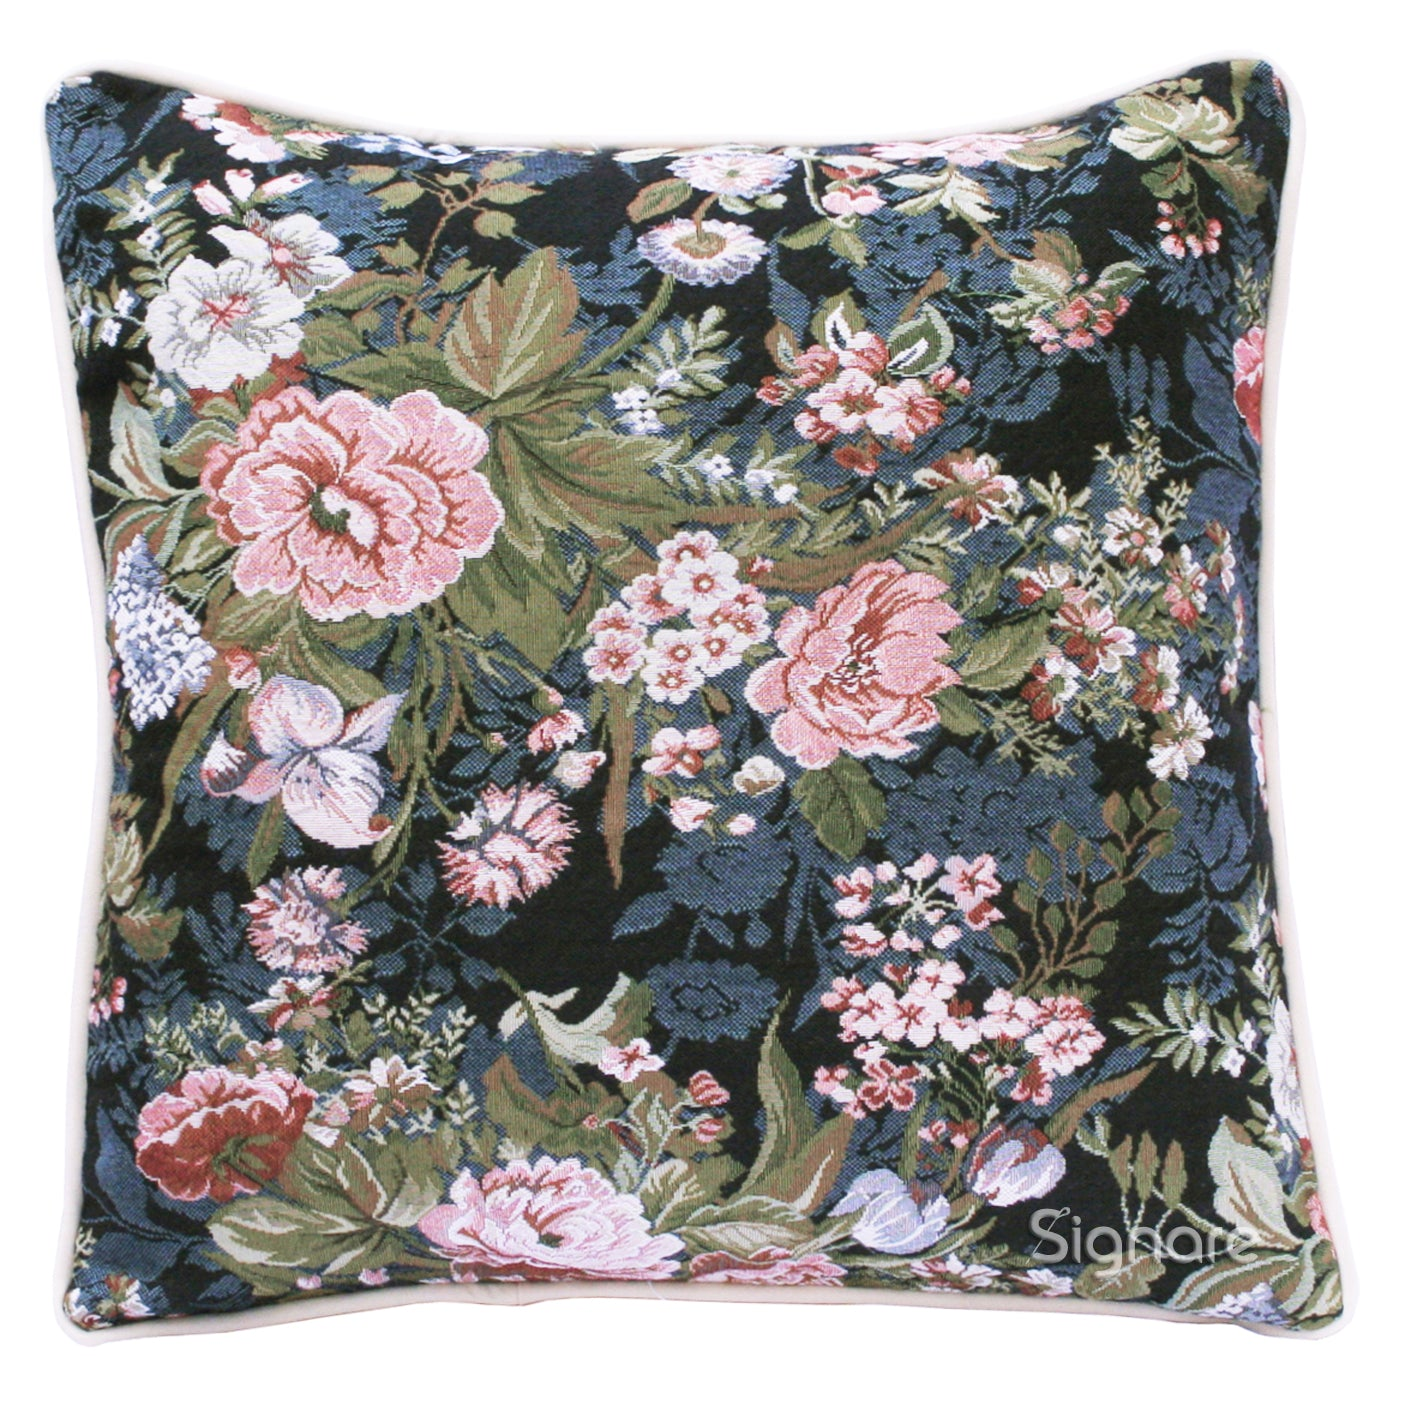 CCOV-PEO | PEONY PILLOWCASE/CUSHION COVER | DECORATIVE DESIGN FASHION HOME PILLOW 18X18 INCH - www.signareusa.com